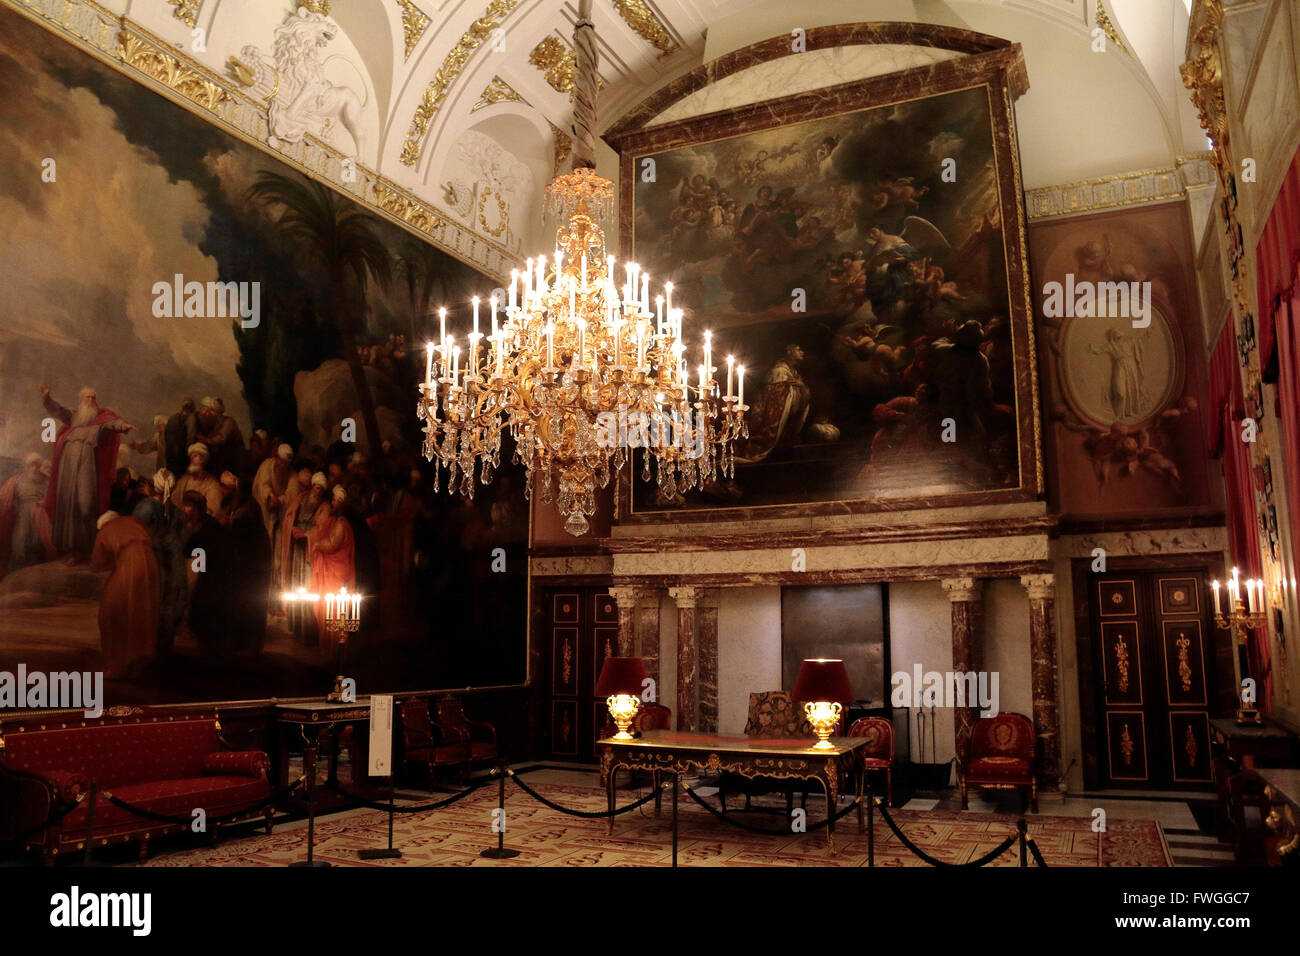 The City Council Chamber inside the Royal Palace in Amsterdam, Netherlands. - Stock Image